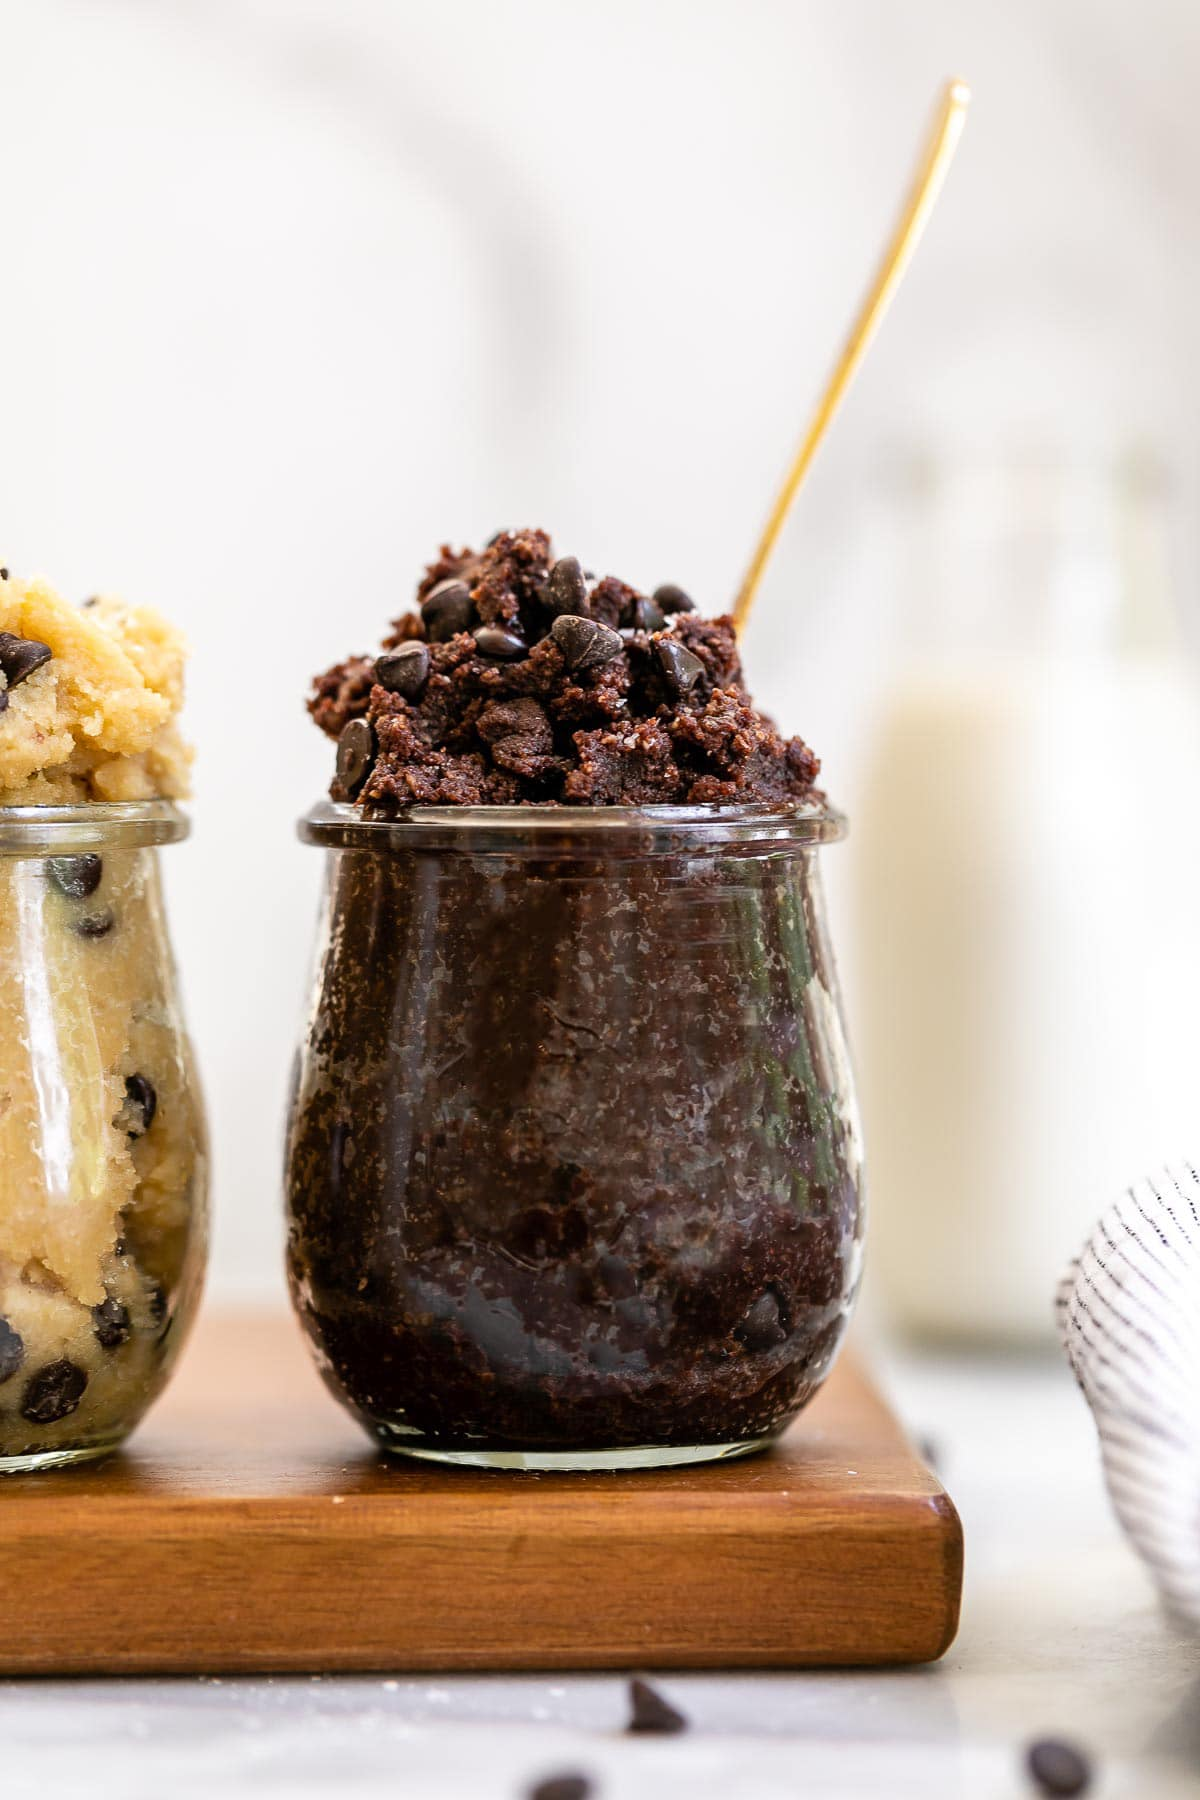 Vegan cookie dough in a jar with a spoon coming out.